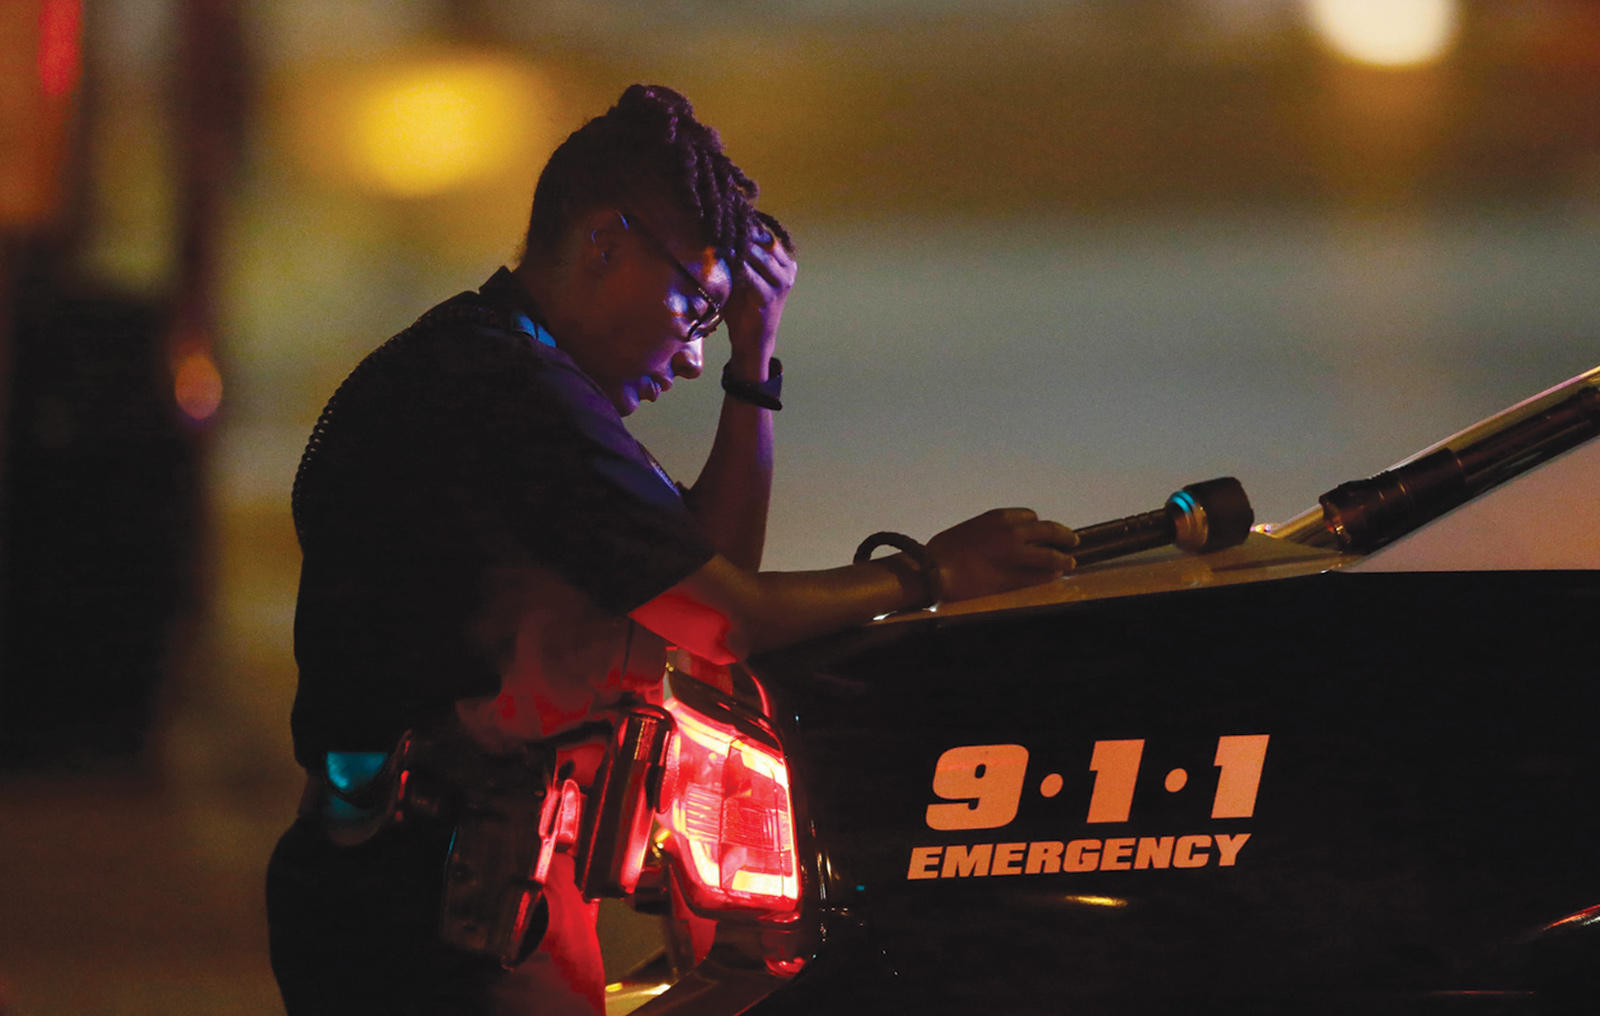 A police officer in downtown Dallas after the shootings that killed five of her fellow officers during the Black Lives Matter march, July 8, 2016